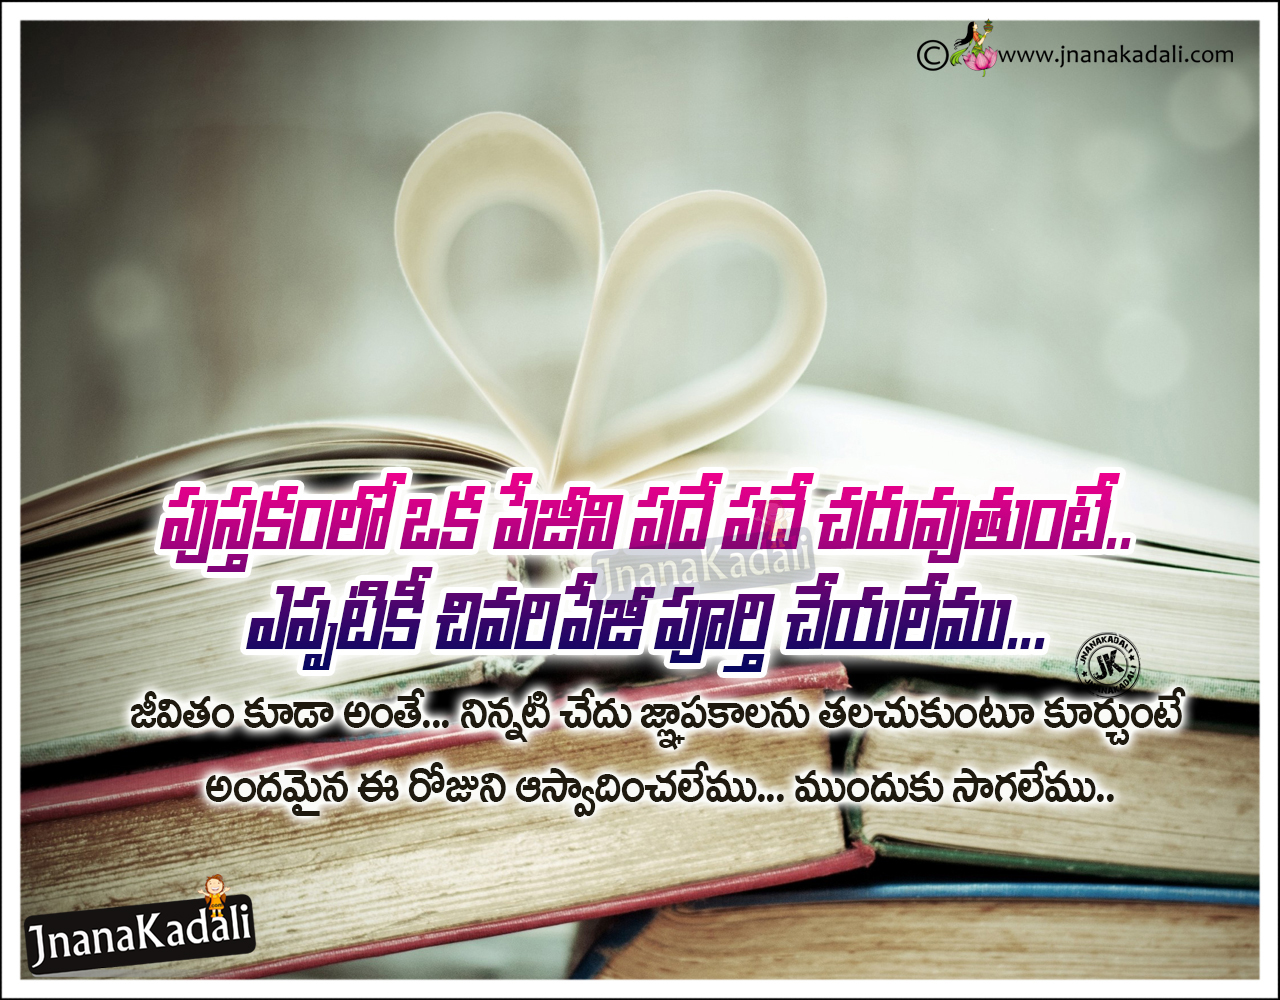 Best Quotes About Life Top Best Telugu Life Motivational Quotes With Hd Wallpapers In